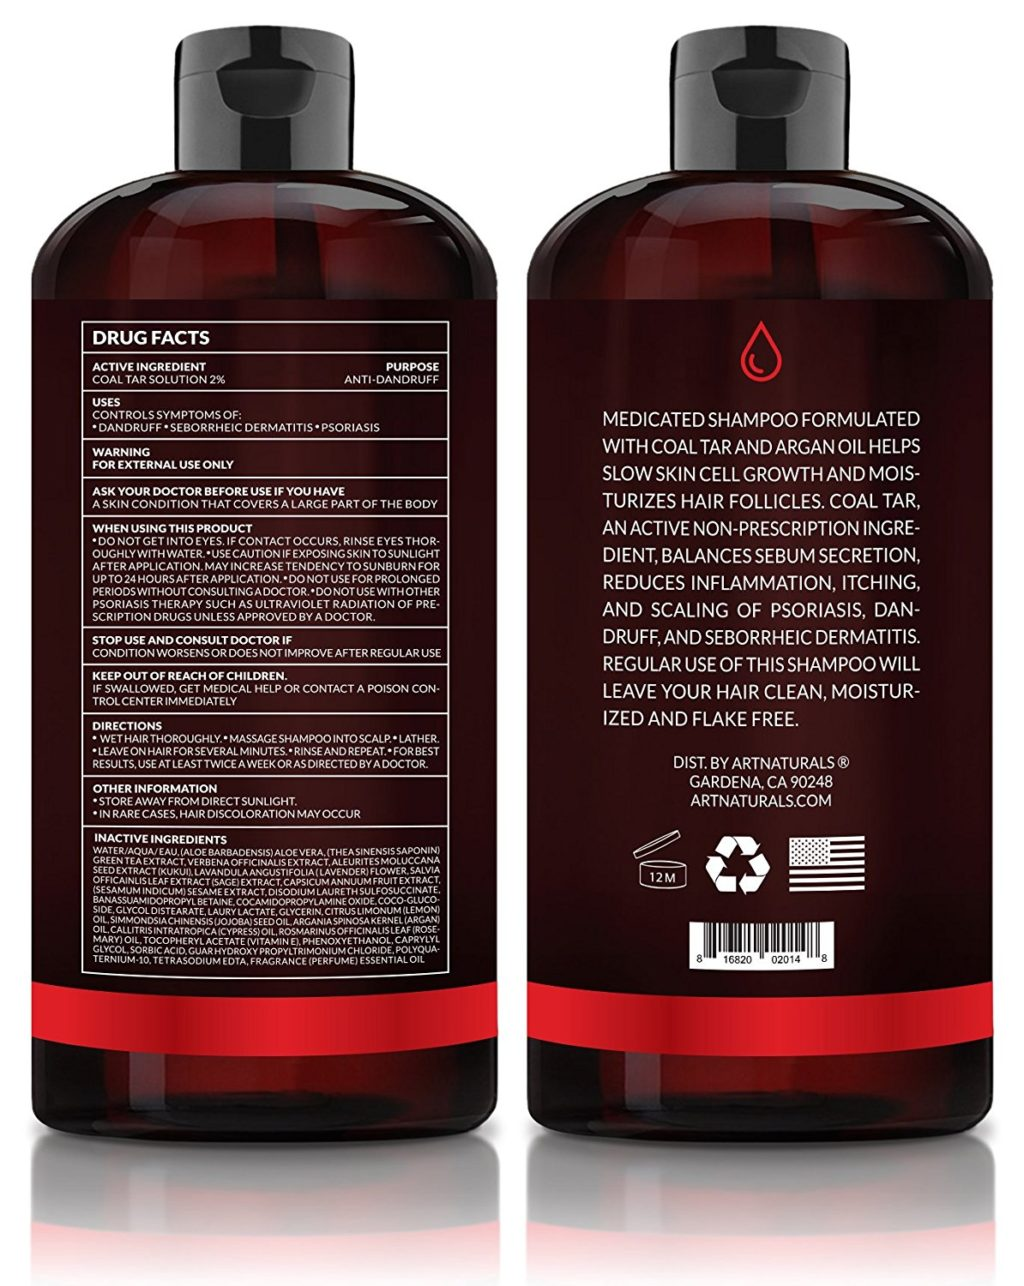 dandruff shampoo, best dandruff shampoo, anti dandruff shampoo,  best shampoo for dandruff, best anti dandruff shampoo, best dandruff shampoo for men, sulfate free dandruff shampoo, dandruff shampoo for kids, dandruff shampoo for dogs, shampoo for dandruff, neutrogena dandruff shampoo, good shampoo for dandruff, natural dandruff shampoo, jason dandruff shampoo, dandruff shampoo for color treated hair, redken dandruff control shampoo, dove dandruff shampoo, nizoral anti dandruff shampoo, medicated dandruff shampoo, color safe dandruff shampoo, best dandruff shampoo for women, walmart dandruff shampoo, baby dandruff shampoo, dandruff shampoo for colored hair, what is the best shampoo for dandruff, organic dandruff shampoo, best shampoo for dry scalp and dandruff, best dandruff shampoo for color treated hair, head and should dandruff shampoo, prescription dandruff shampoo